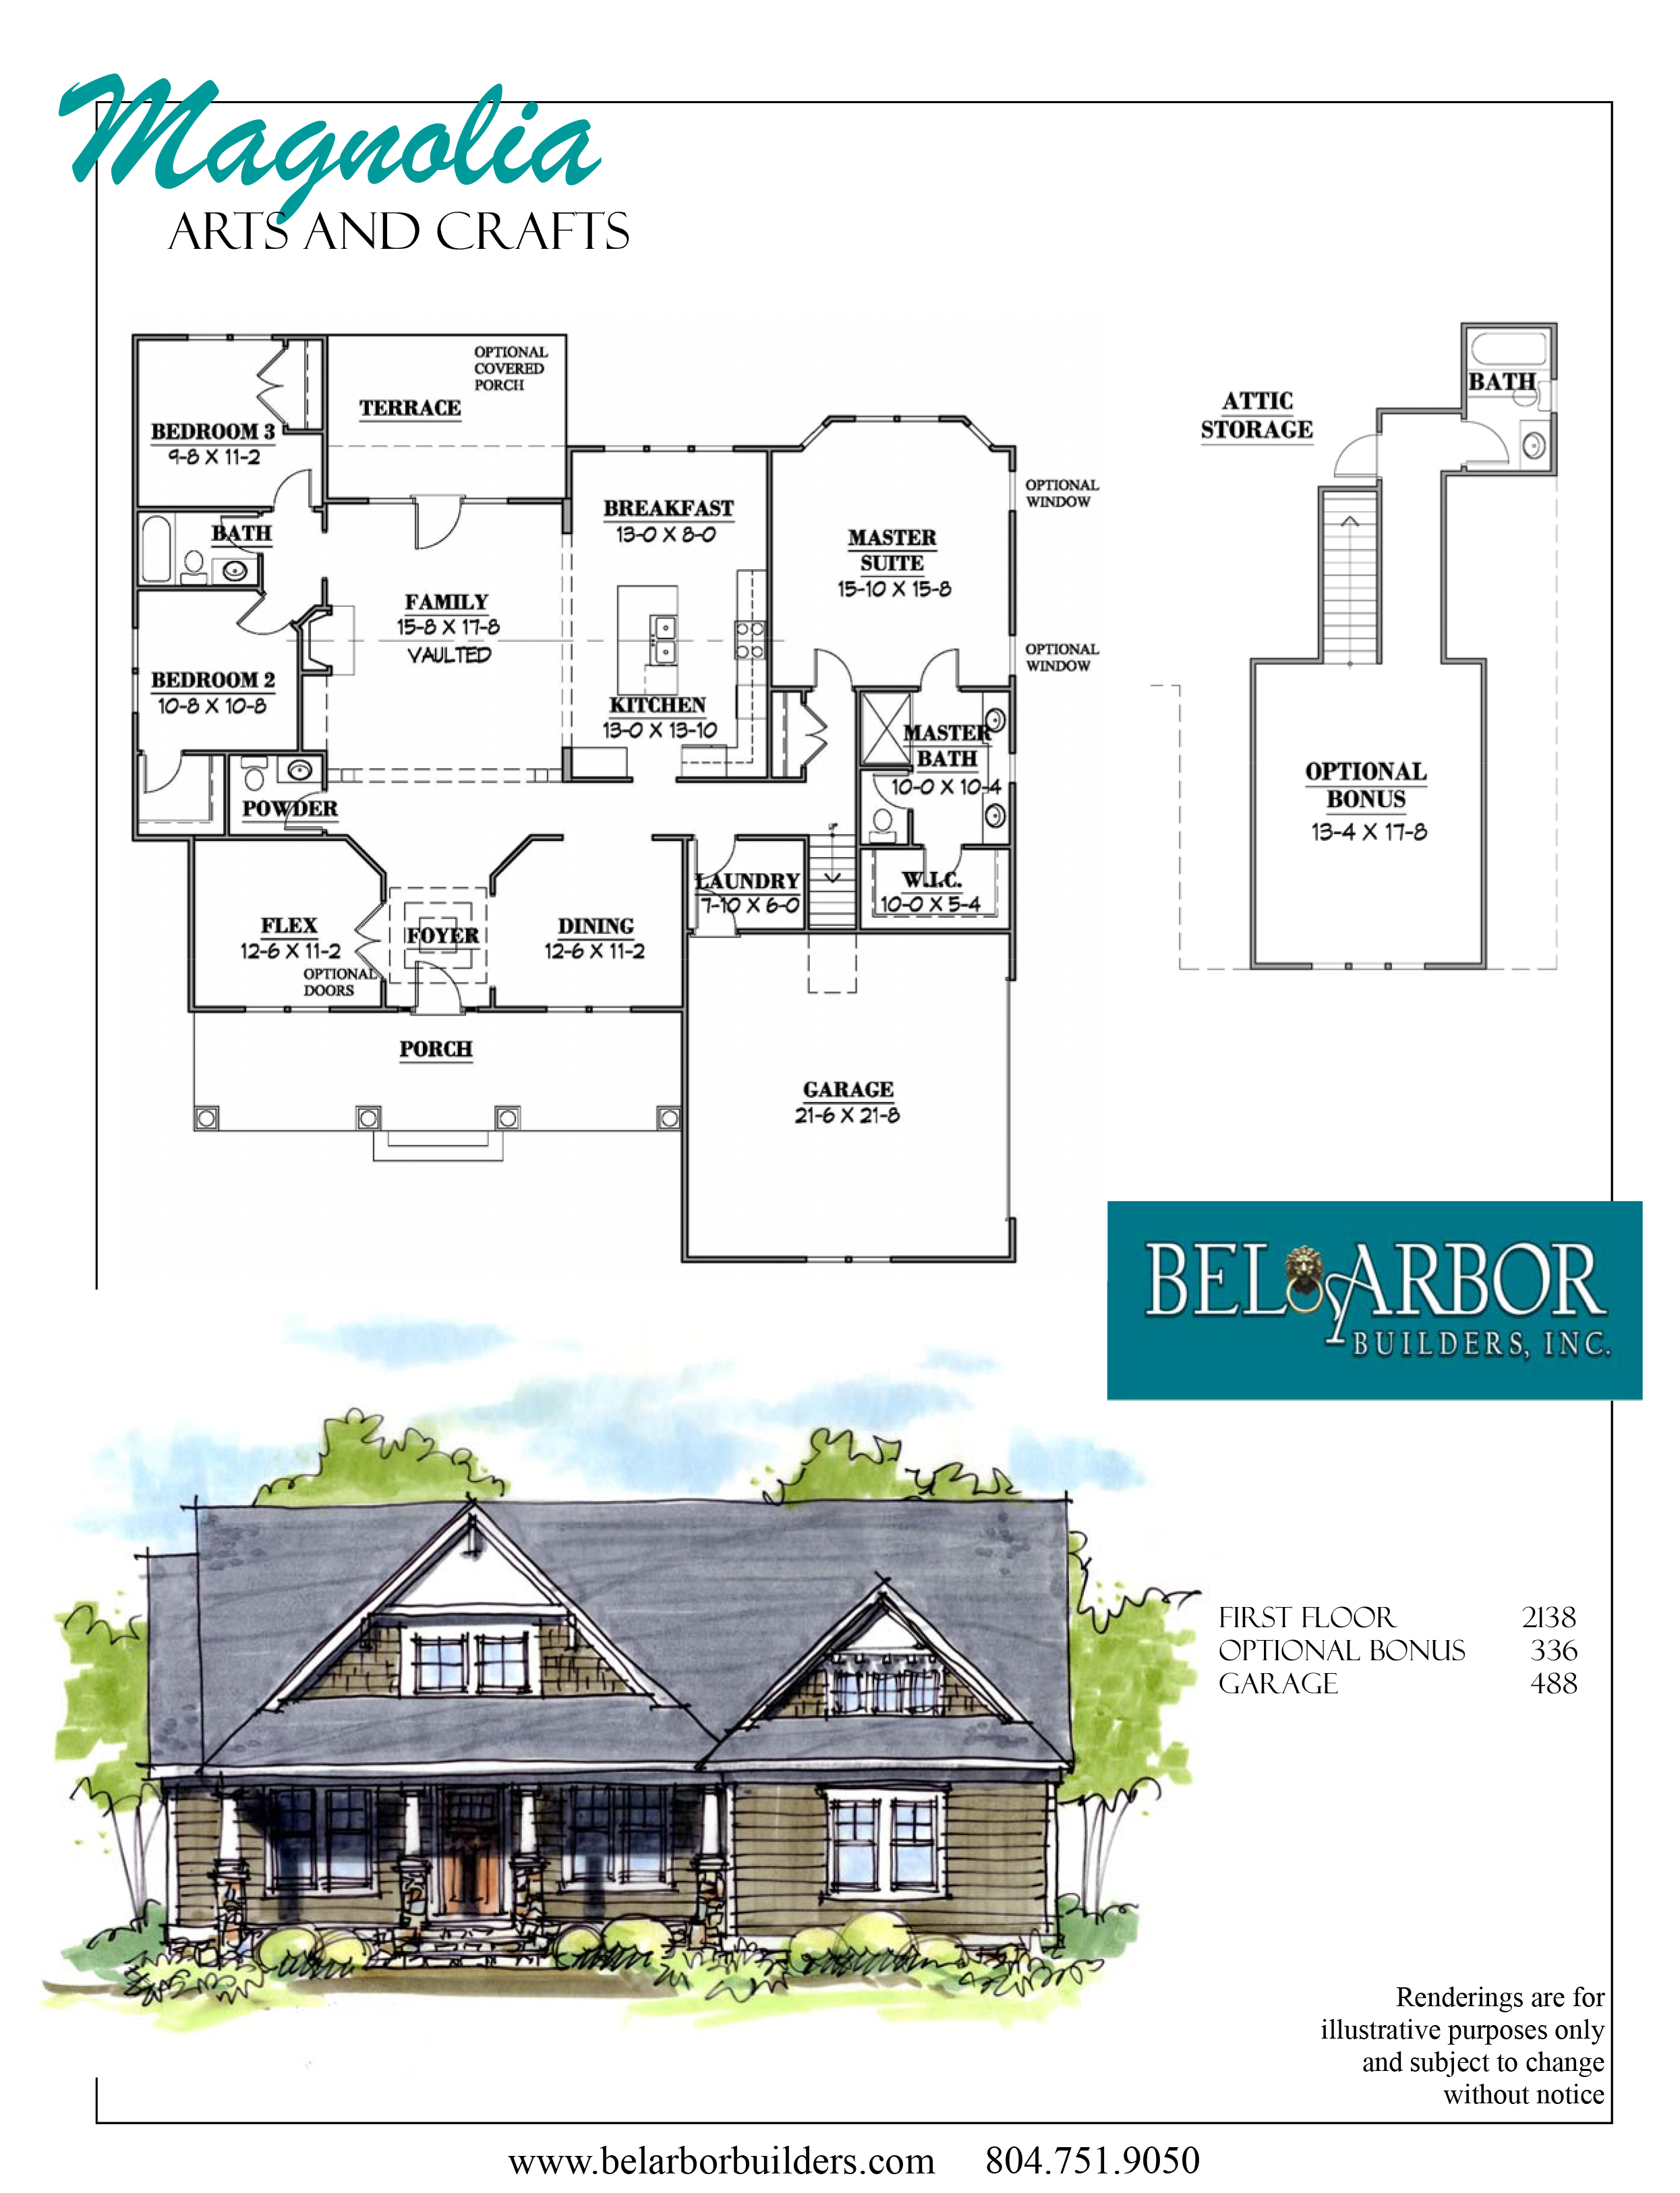 Magnolia By Bel Arbor Builders Hallsley Richmond Virginia